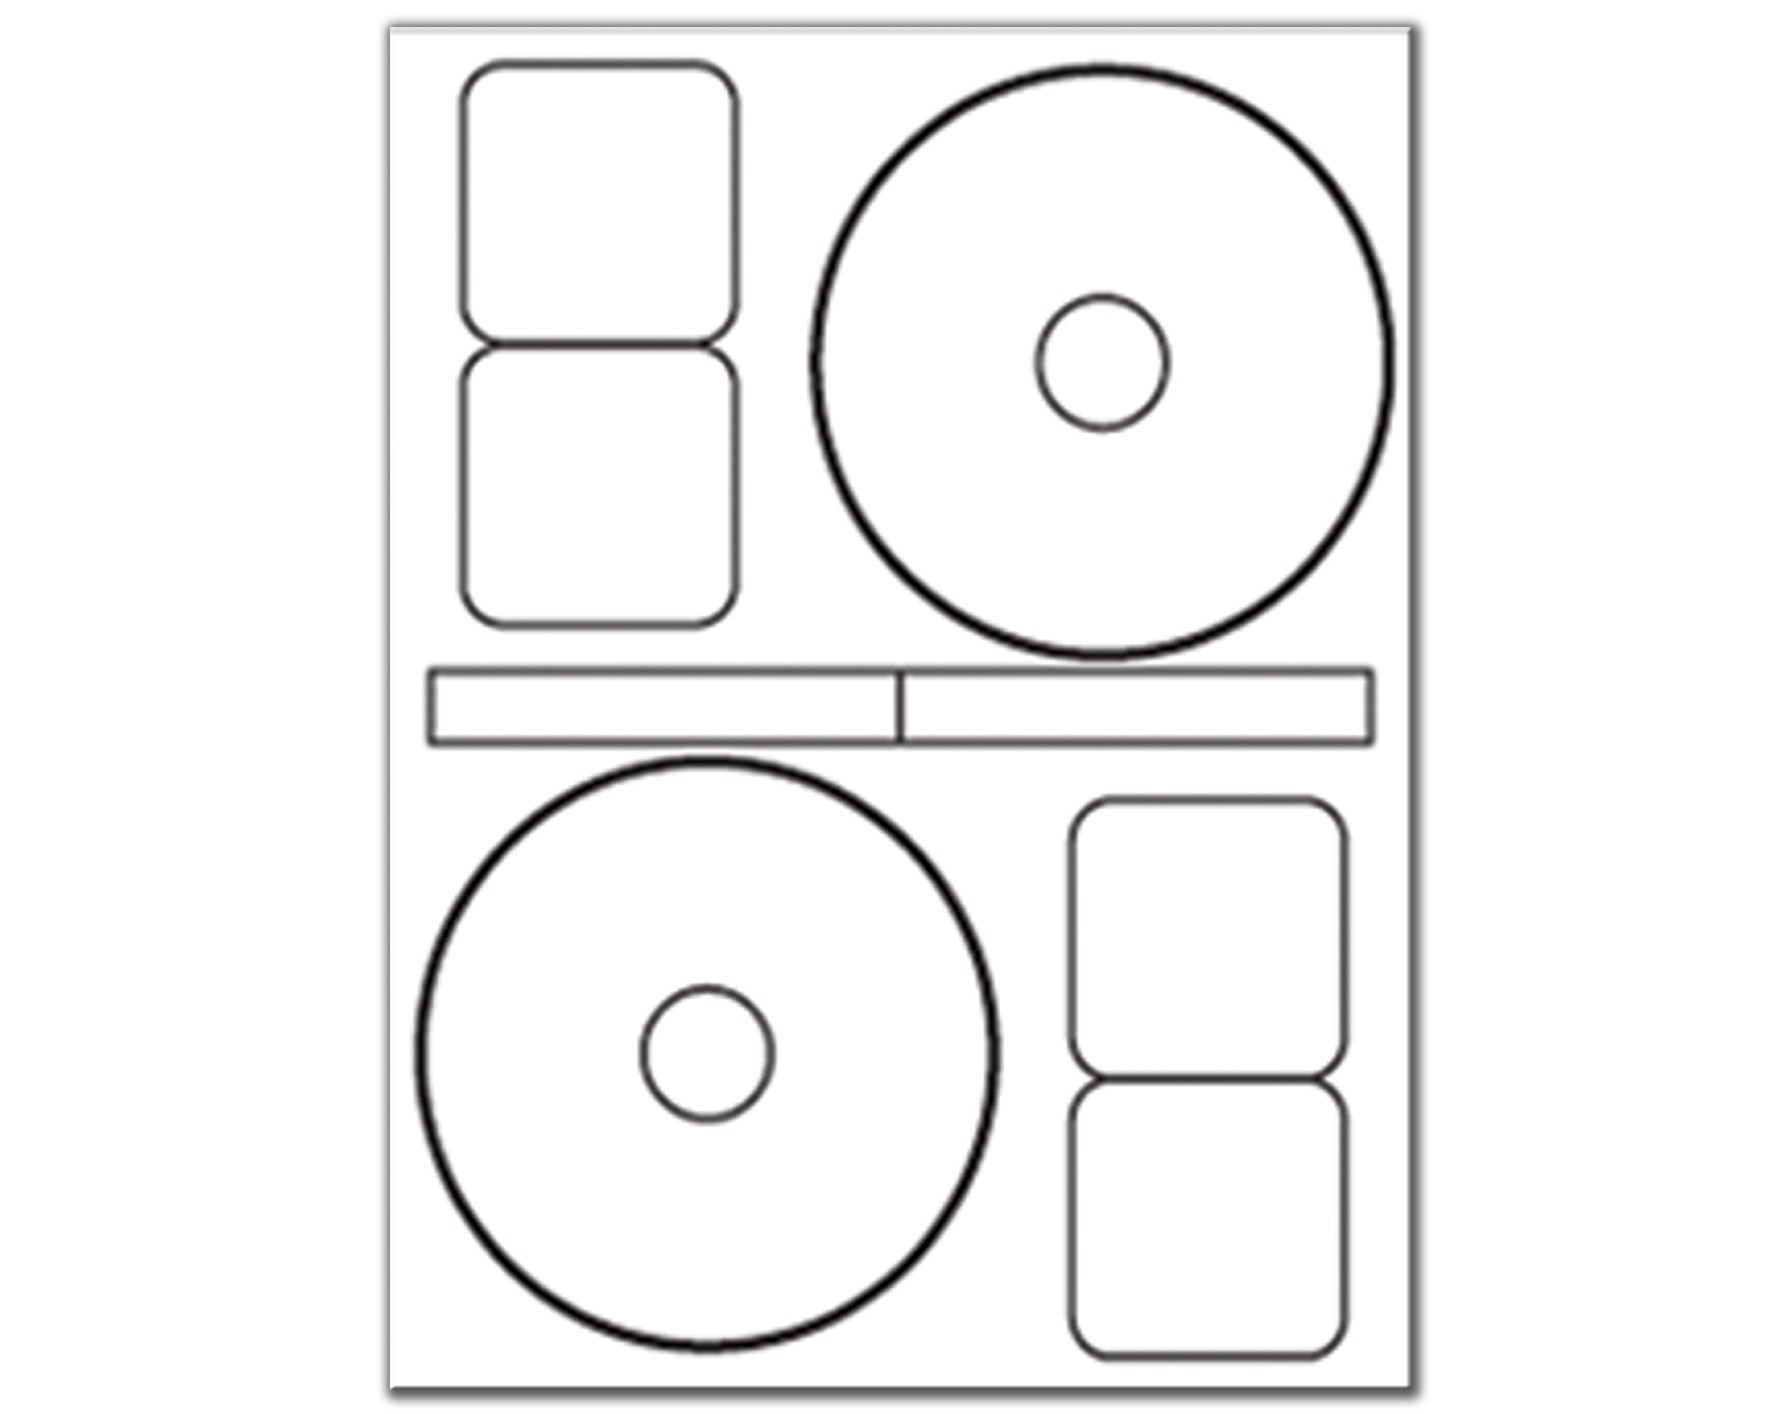 fellowes cd label template - stomper cd dvd labels 2 up 1 package cd dvd labels